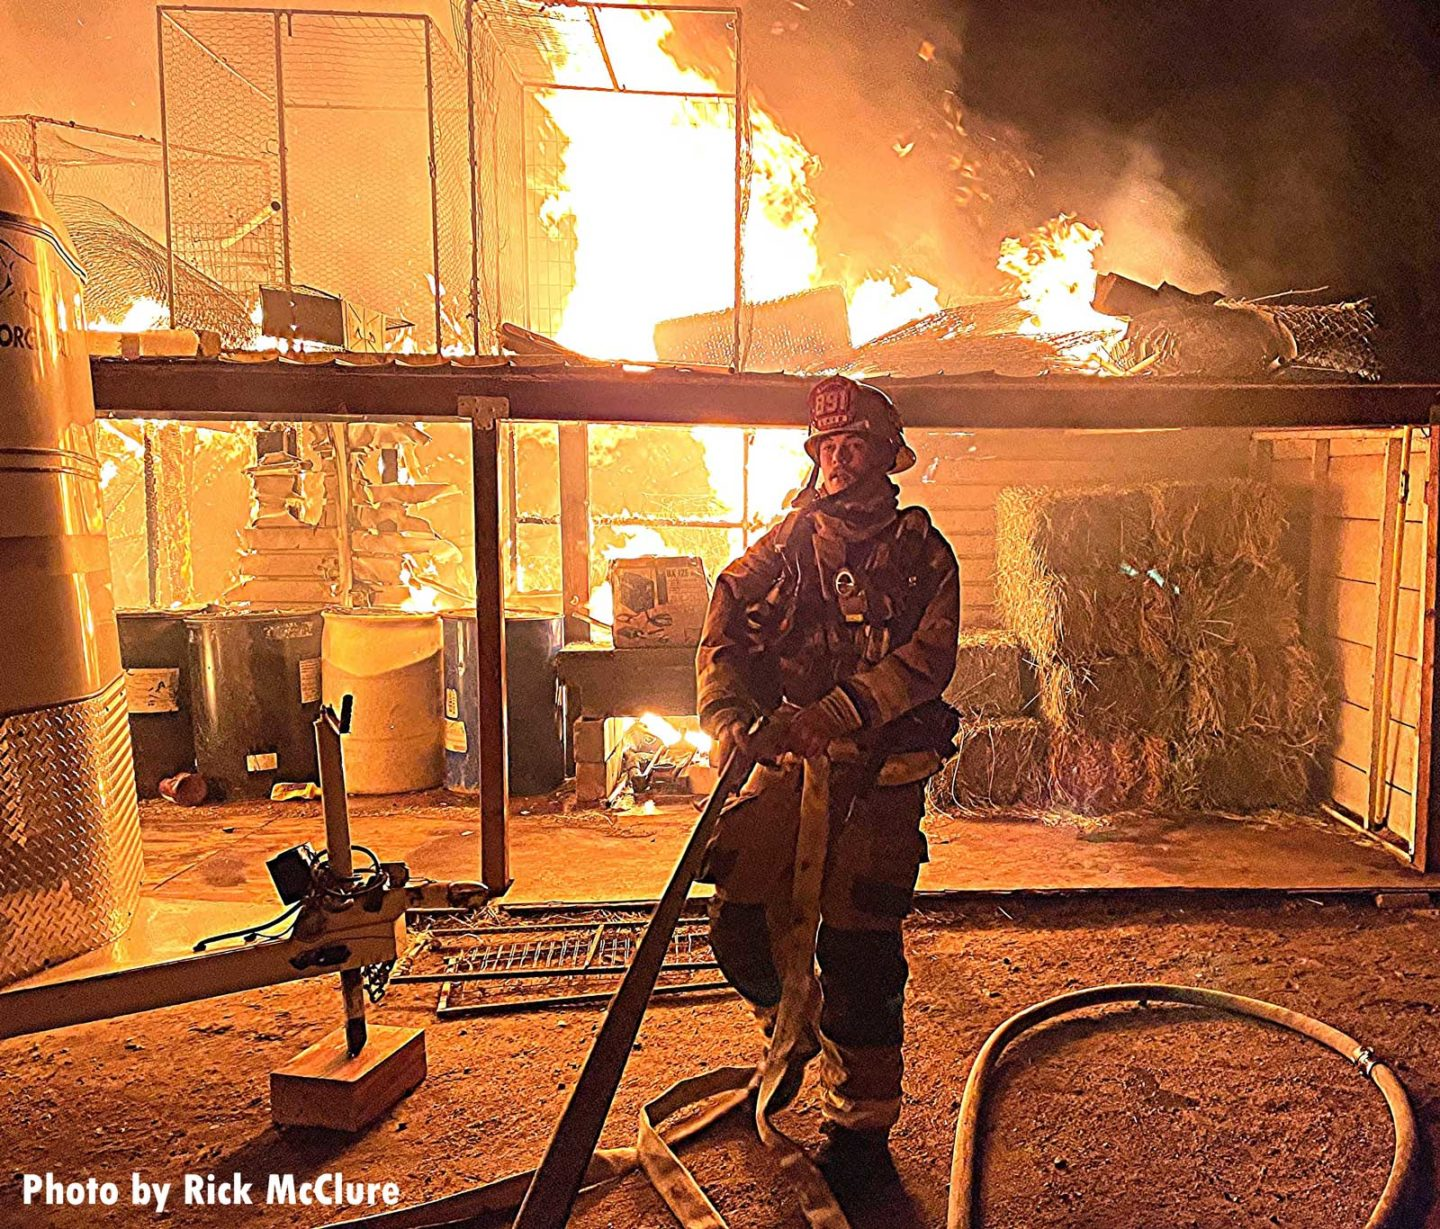 Firefighter flakes out a hoseline with flames in the background